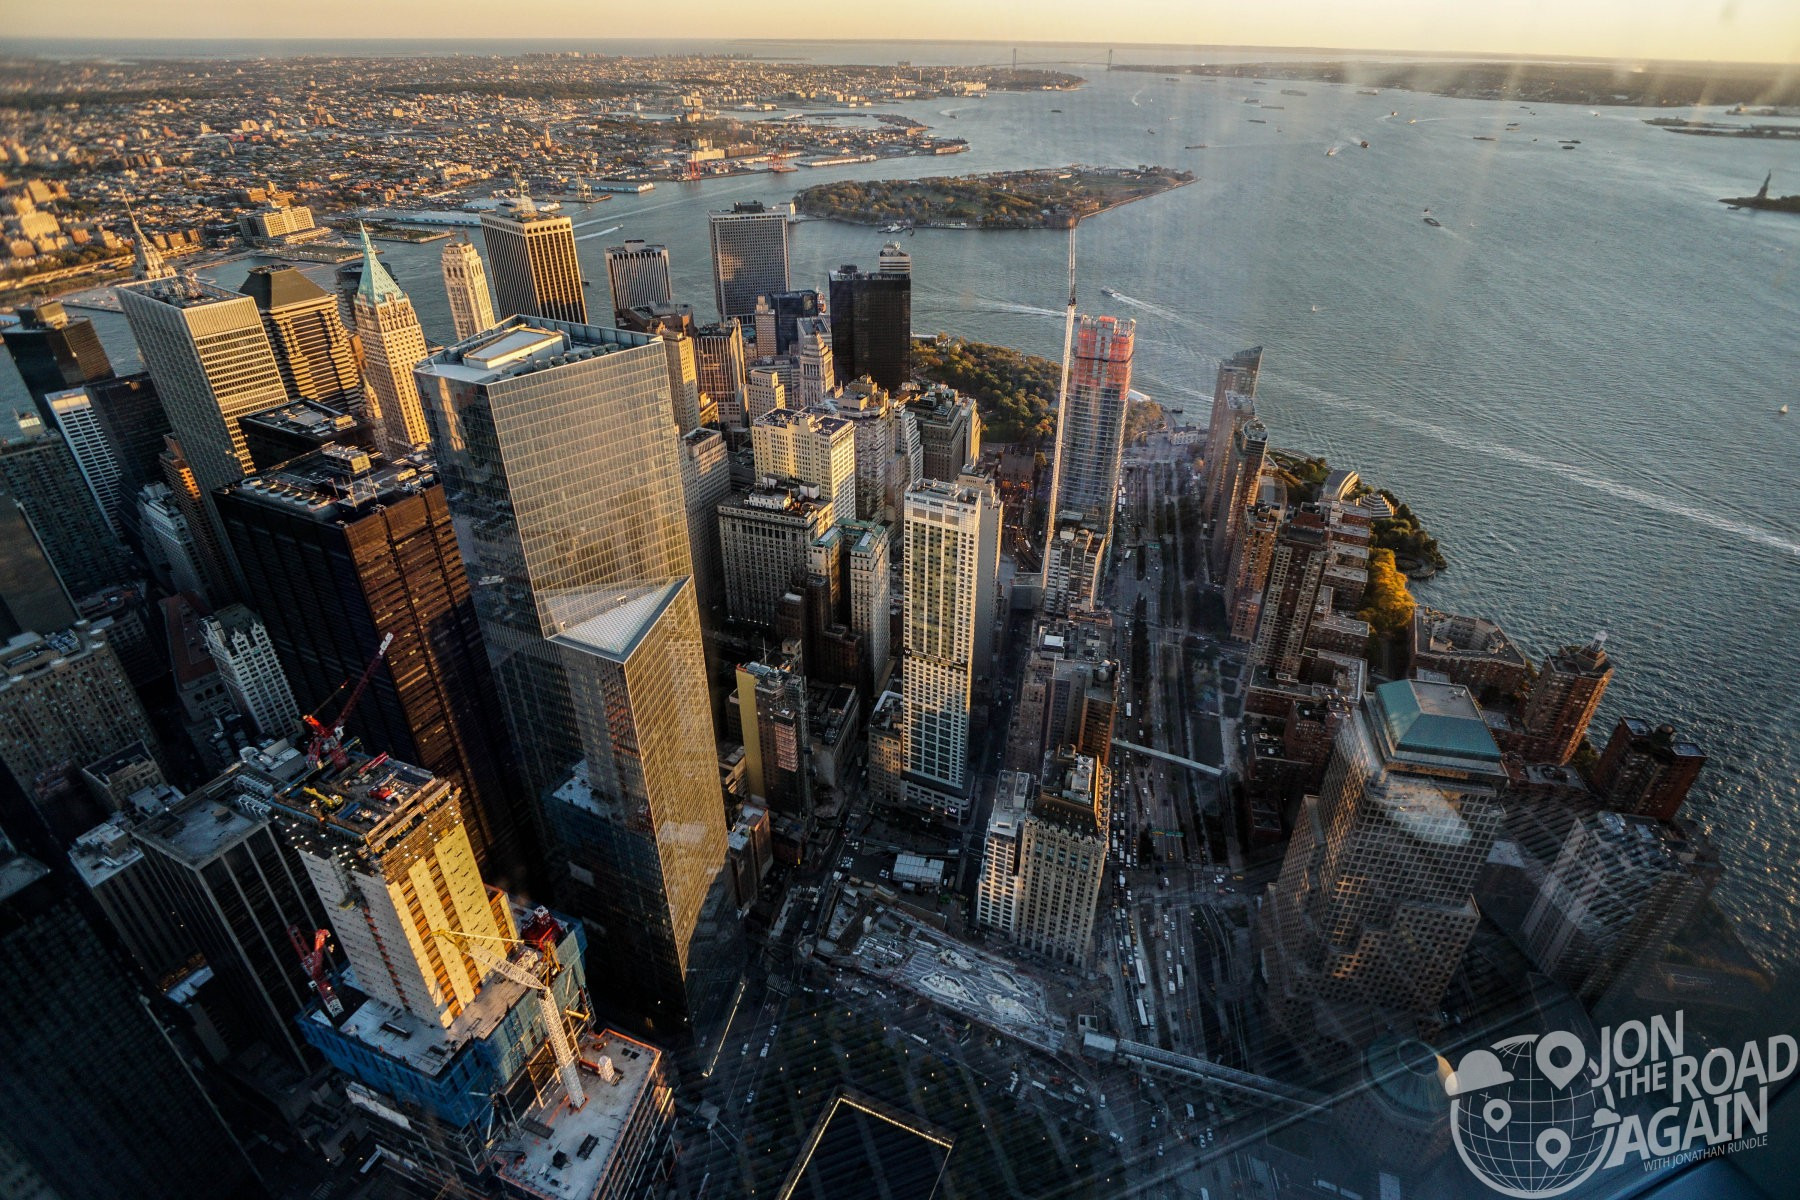 Lower Manhattan from One World Observatory